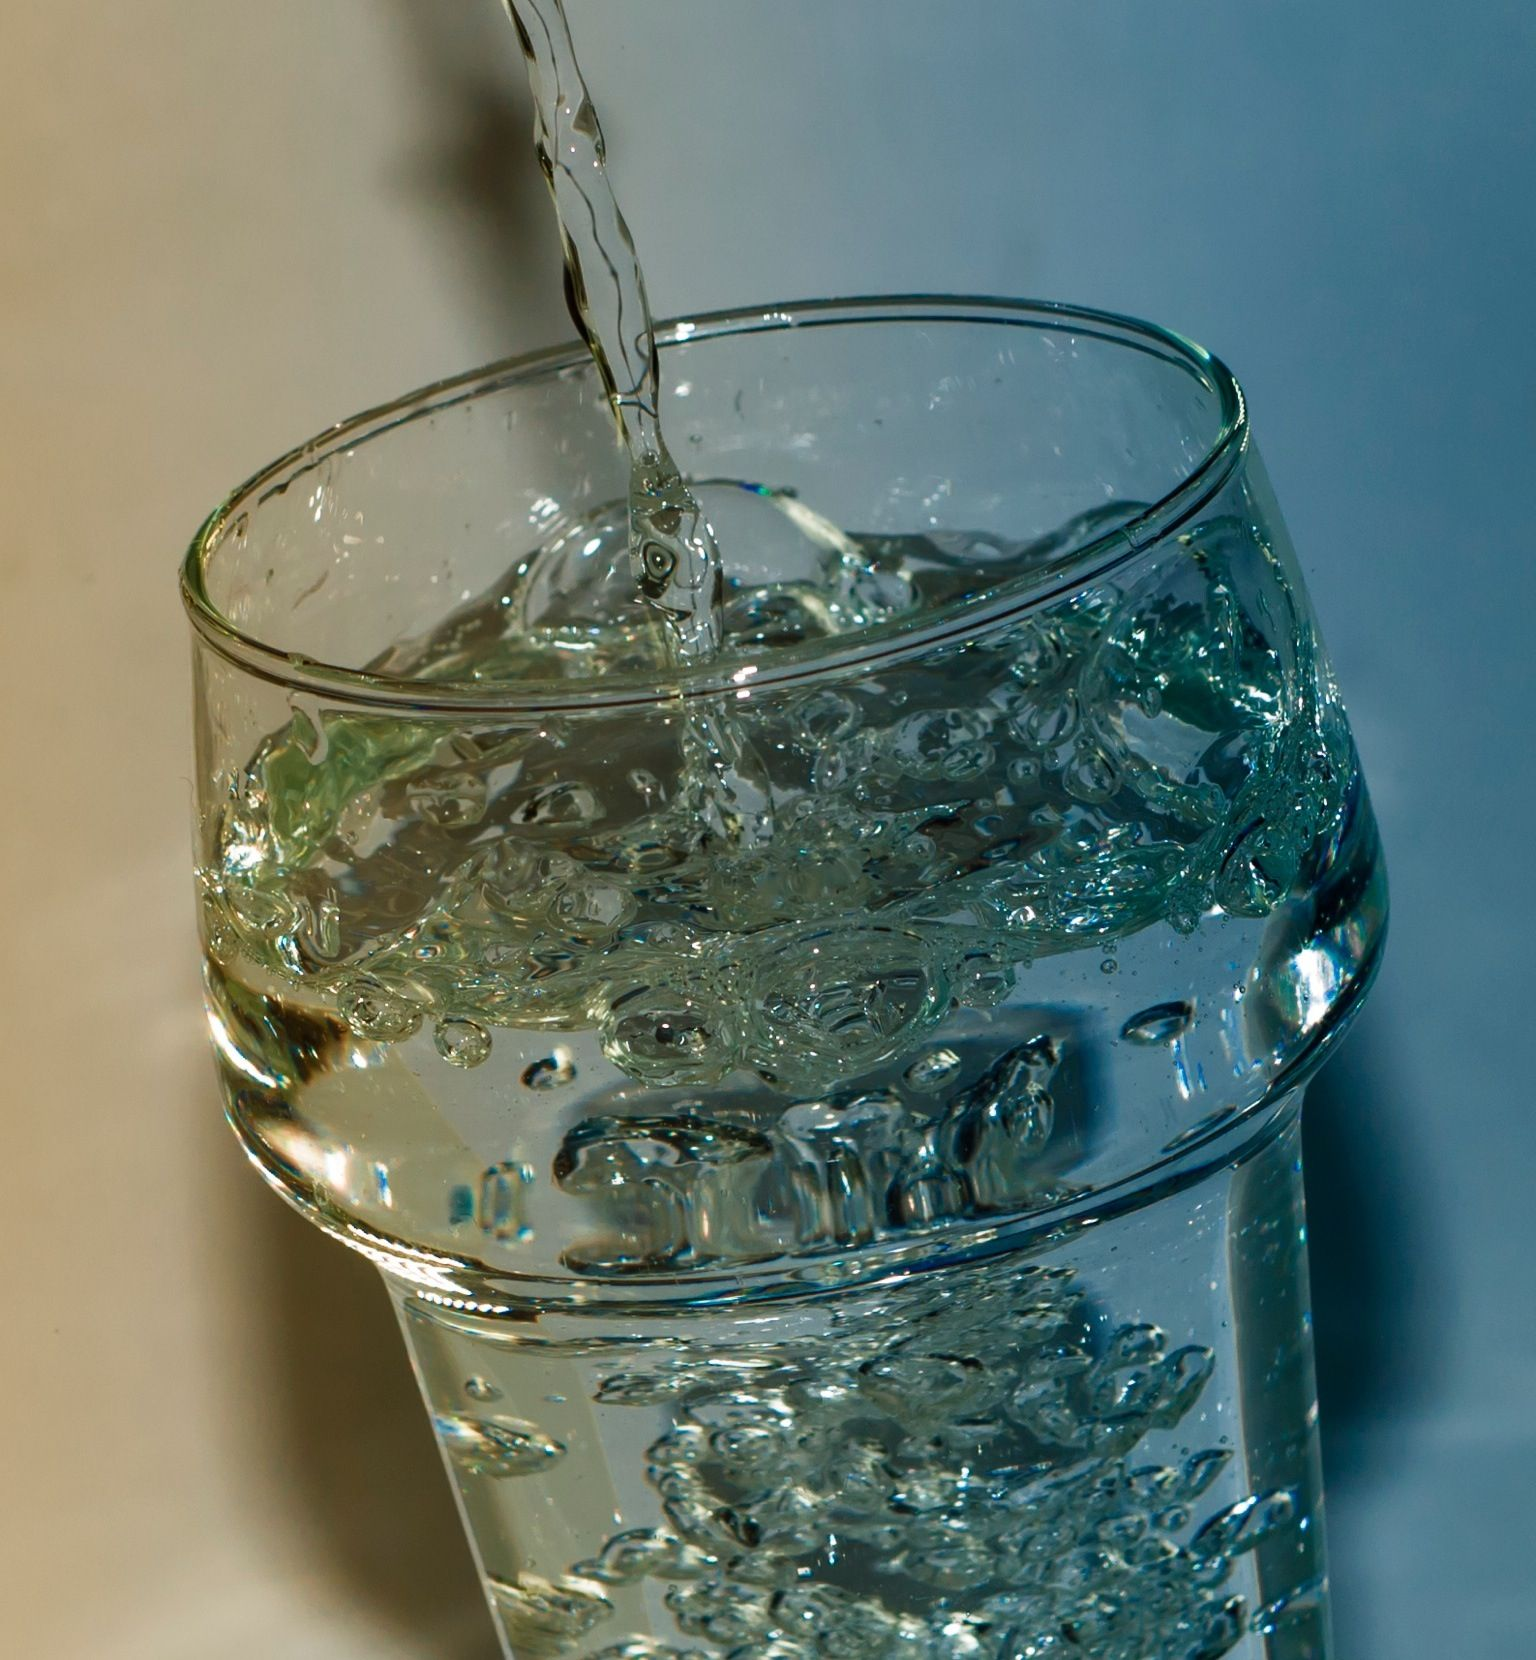 Cool sparkling water